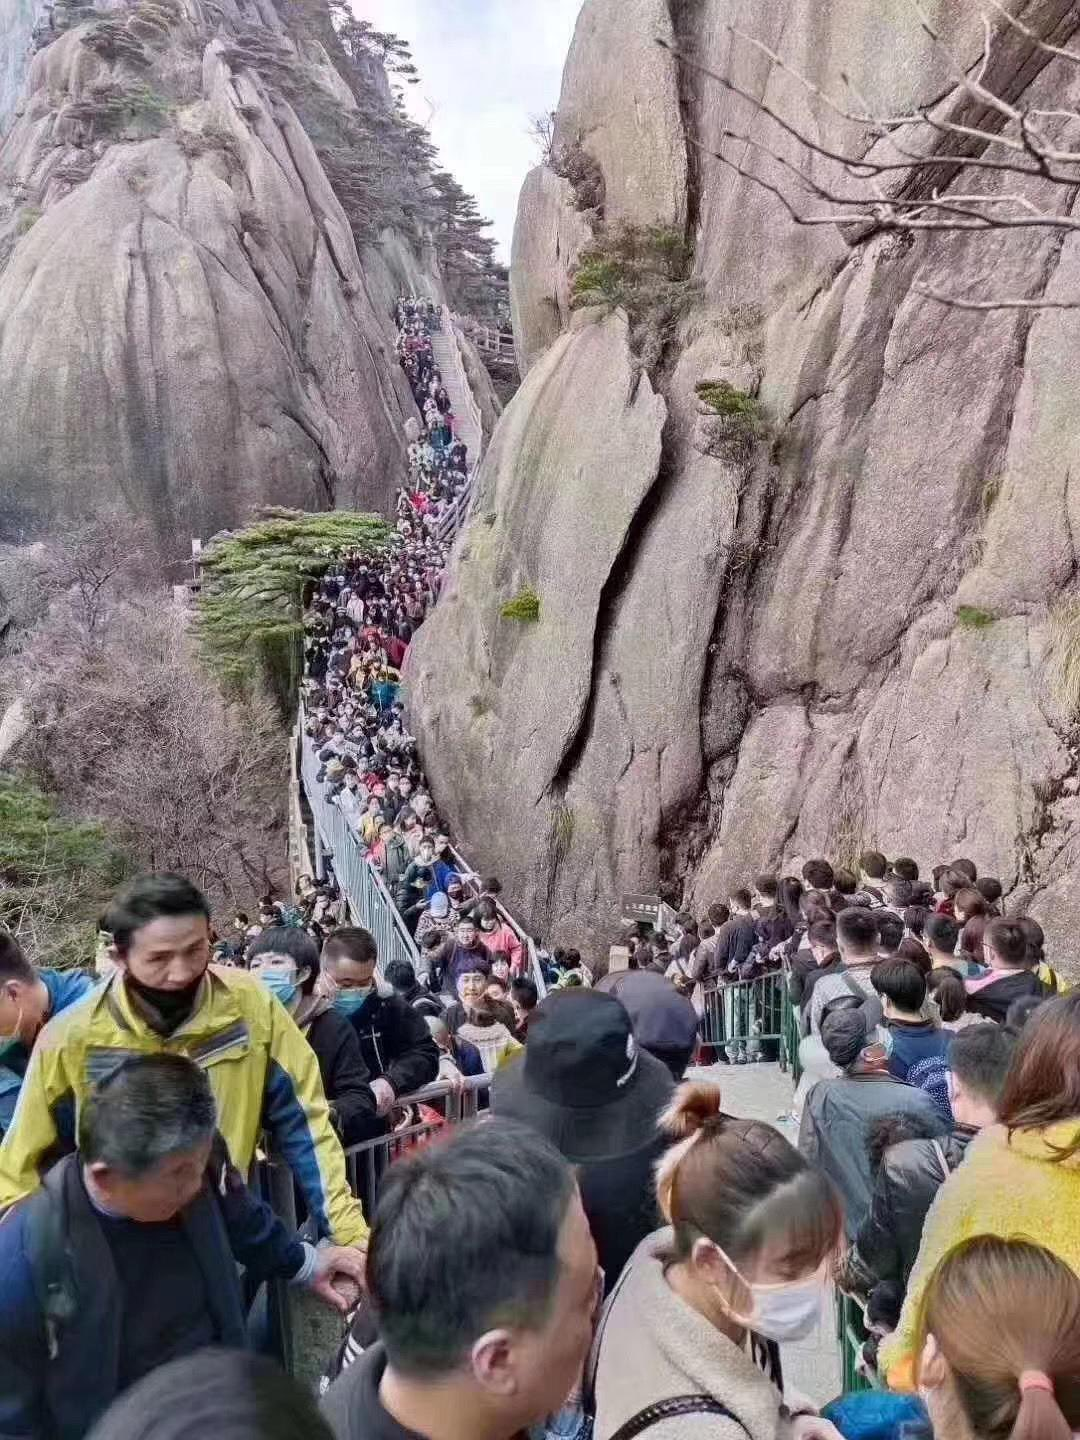 Huanshan covidiot Chinese tourists after lockdown